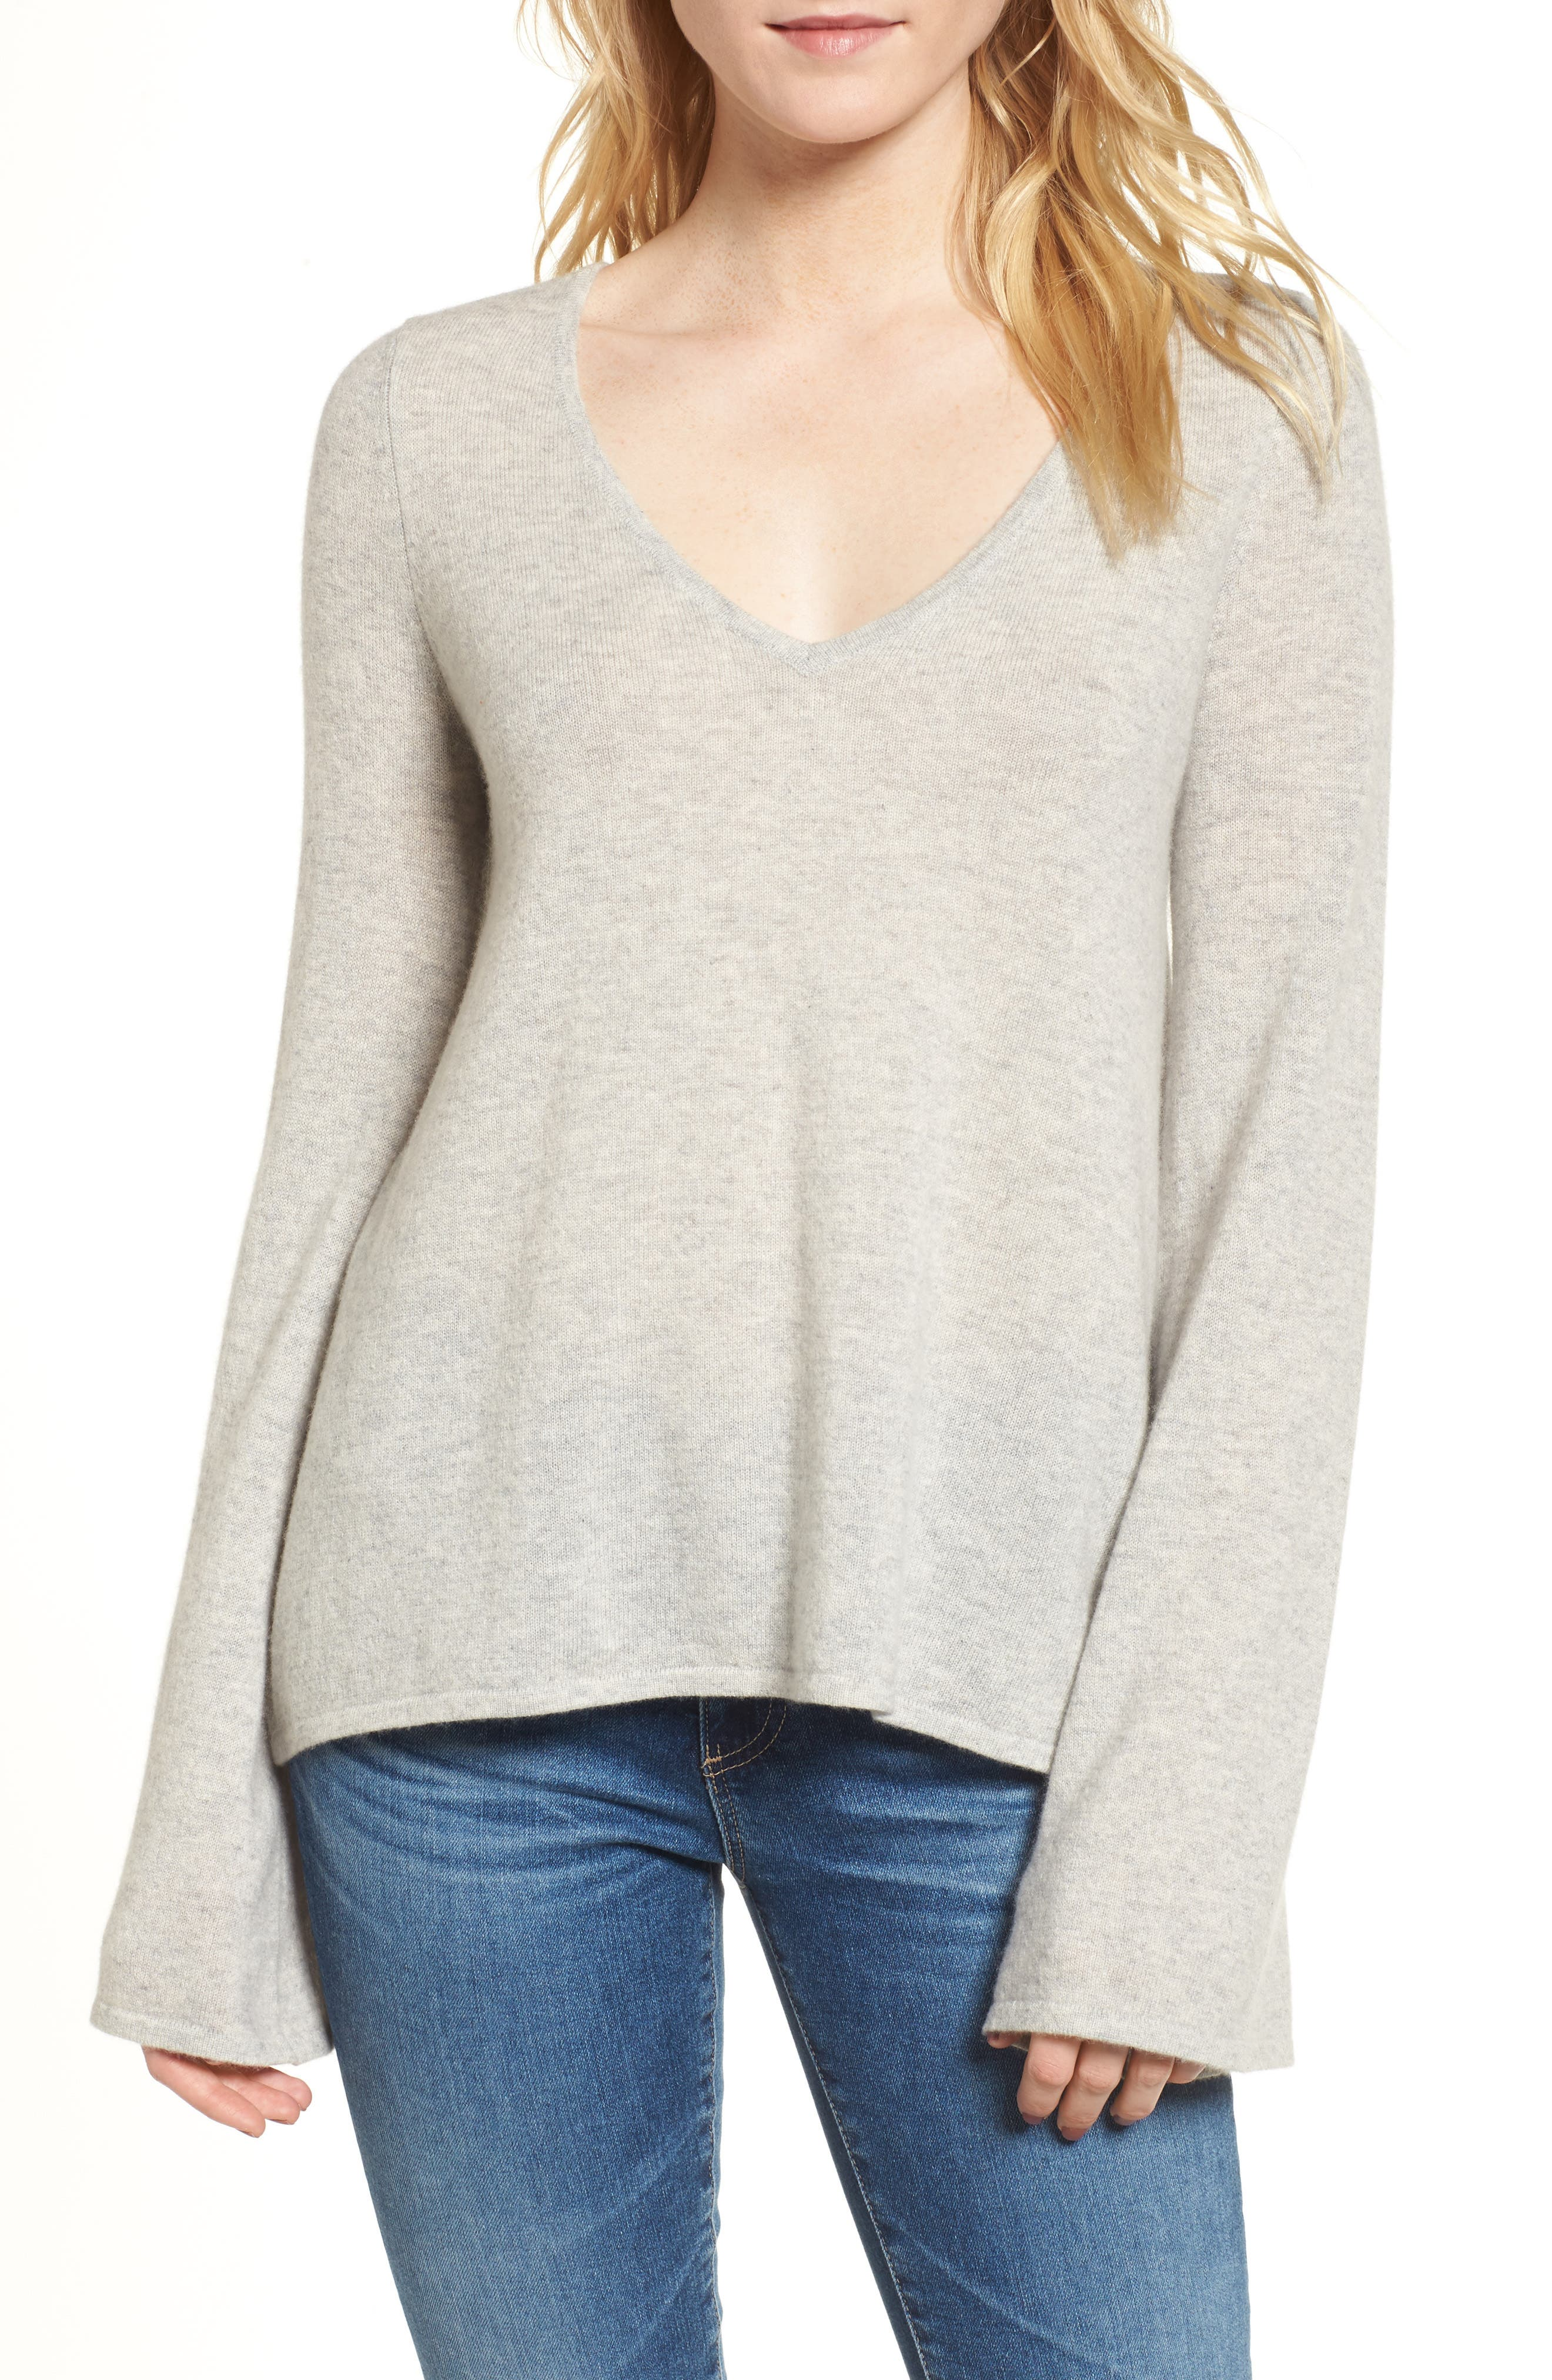 Marylee Cashmere Top,                             Main thumbnail 1, color,                             037